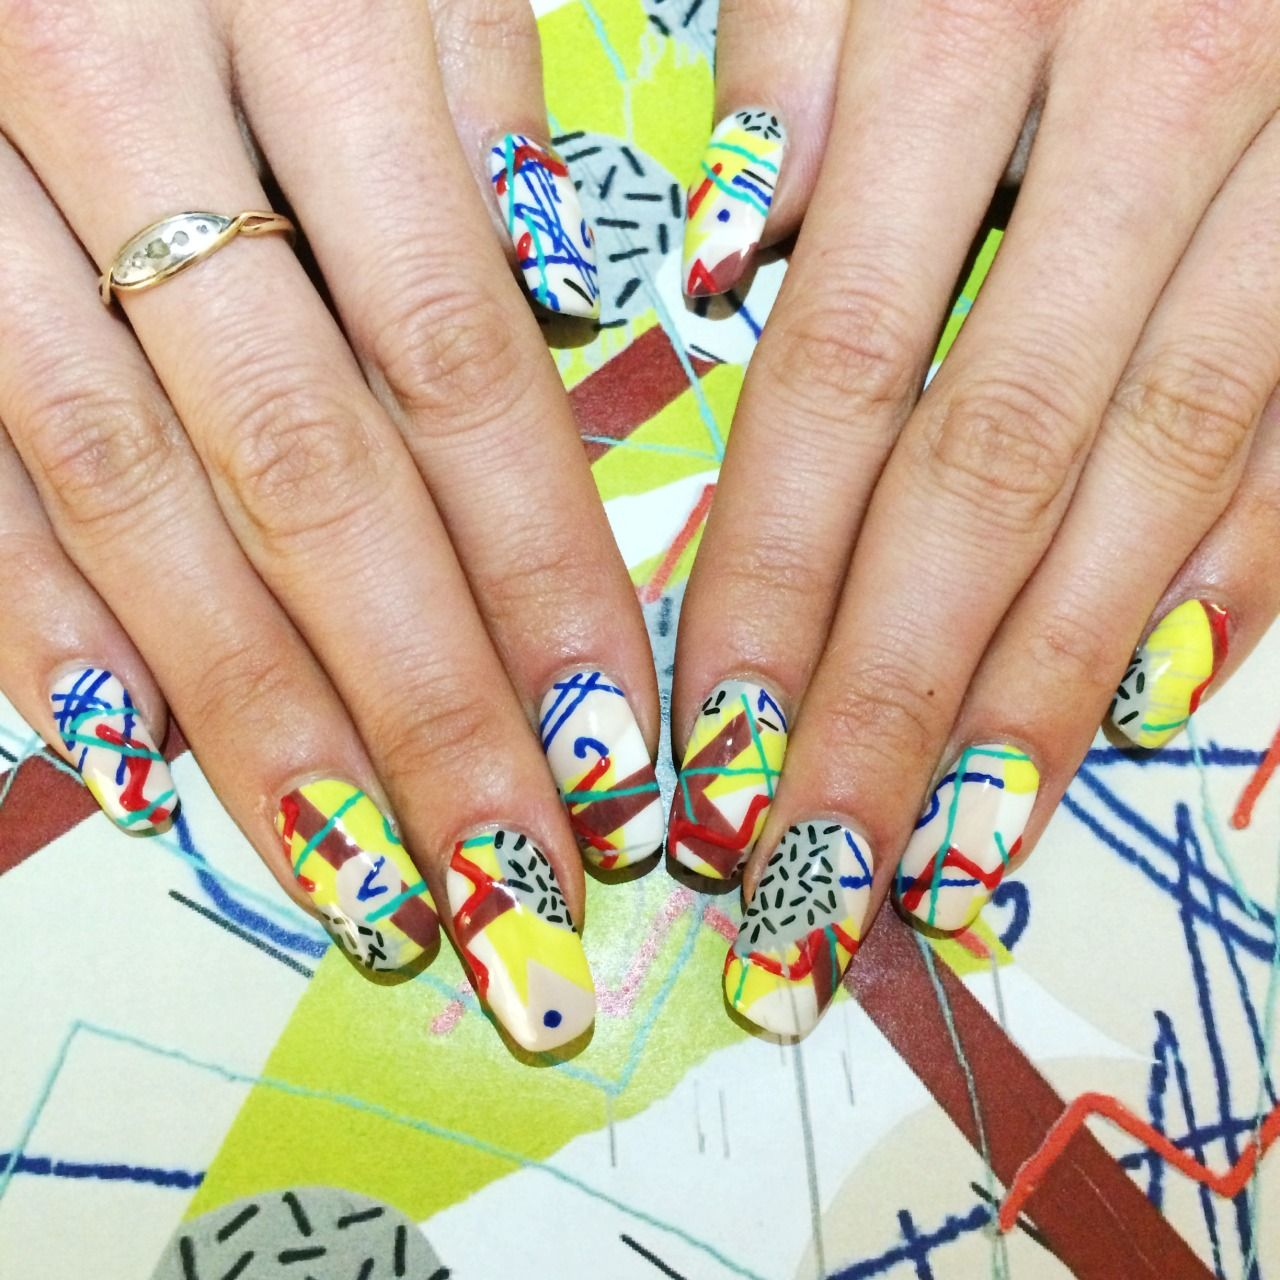 Inspired by Trudy Benson, \'Bop\', 2014 nail art history   Trudy ...